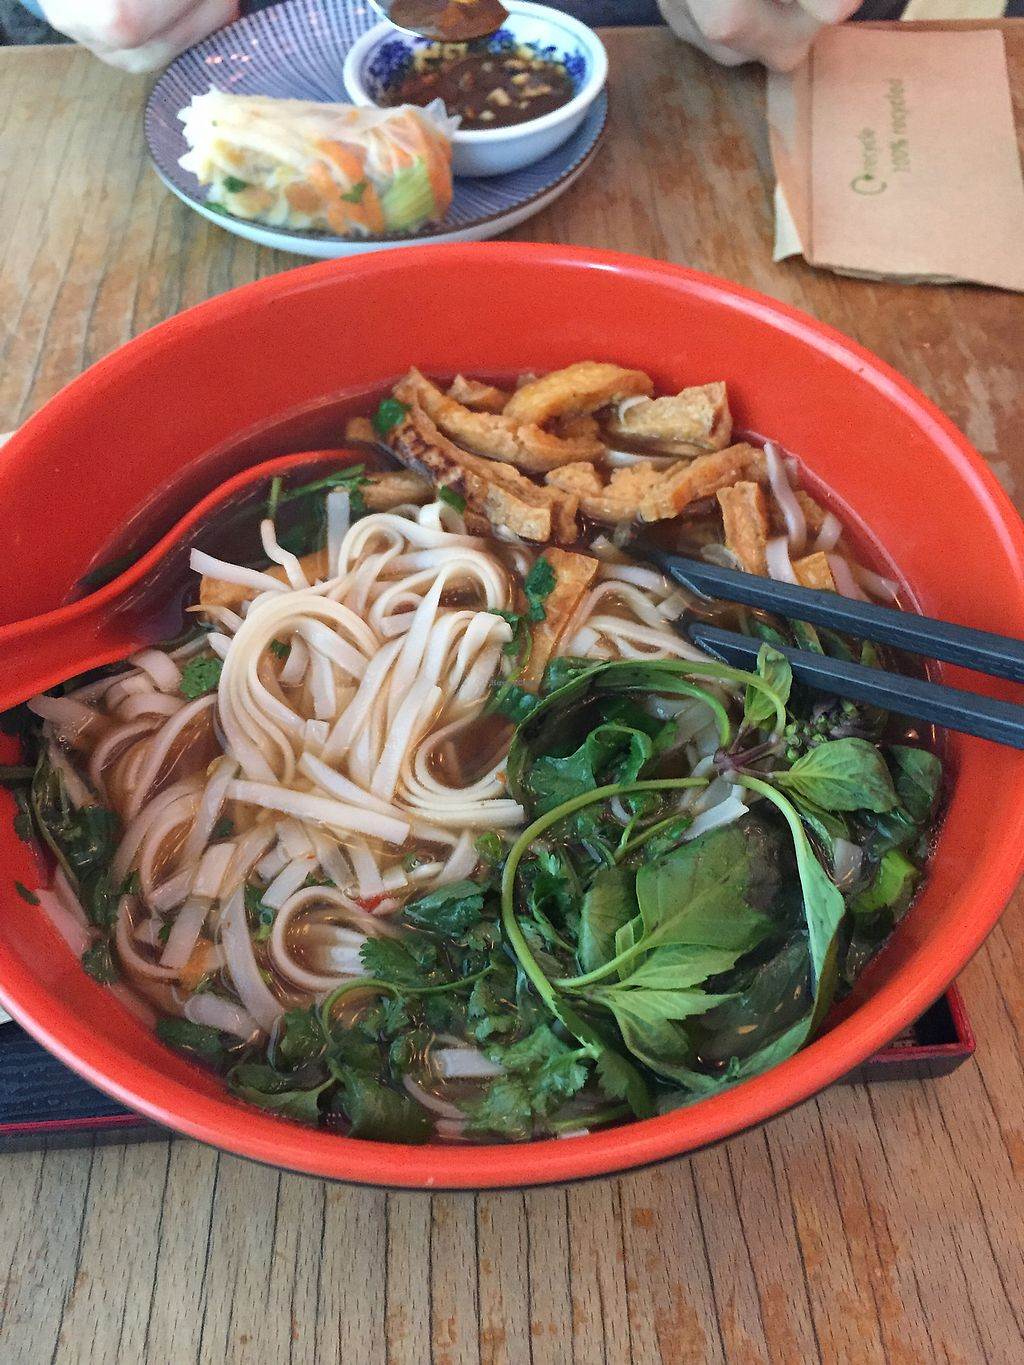 """Photo of Fei Scho  by <a href=""""/members/profile/catshaw"""">catshaw</a> <br/>Amazing Vegan Pho! <br/> February 15, 2018  - <a href='/contact/abuse/image/66700/359754'>Report</a>"""